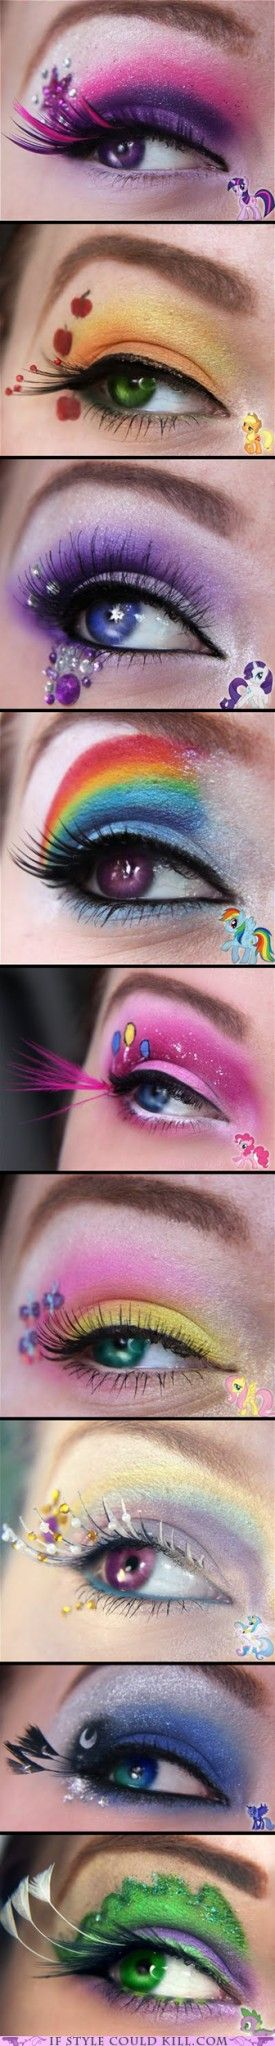 My Little Pony eye makeup!